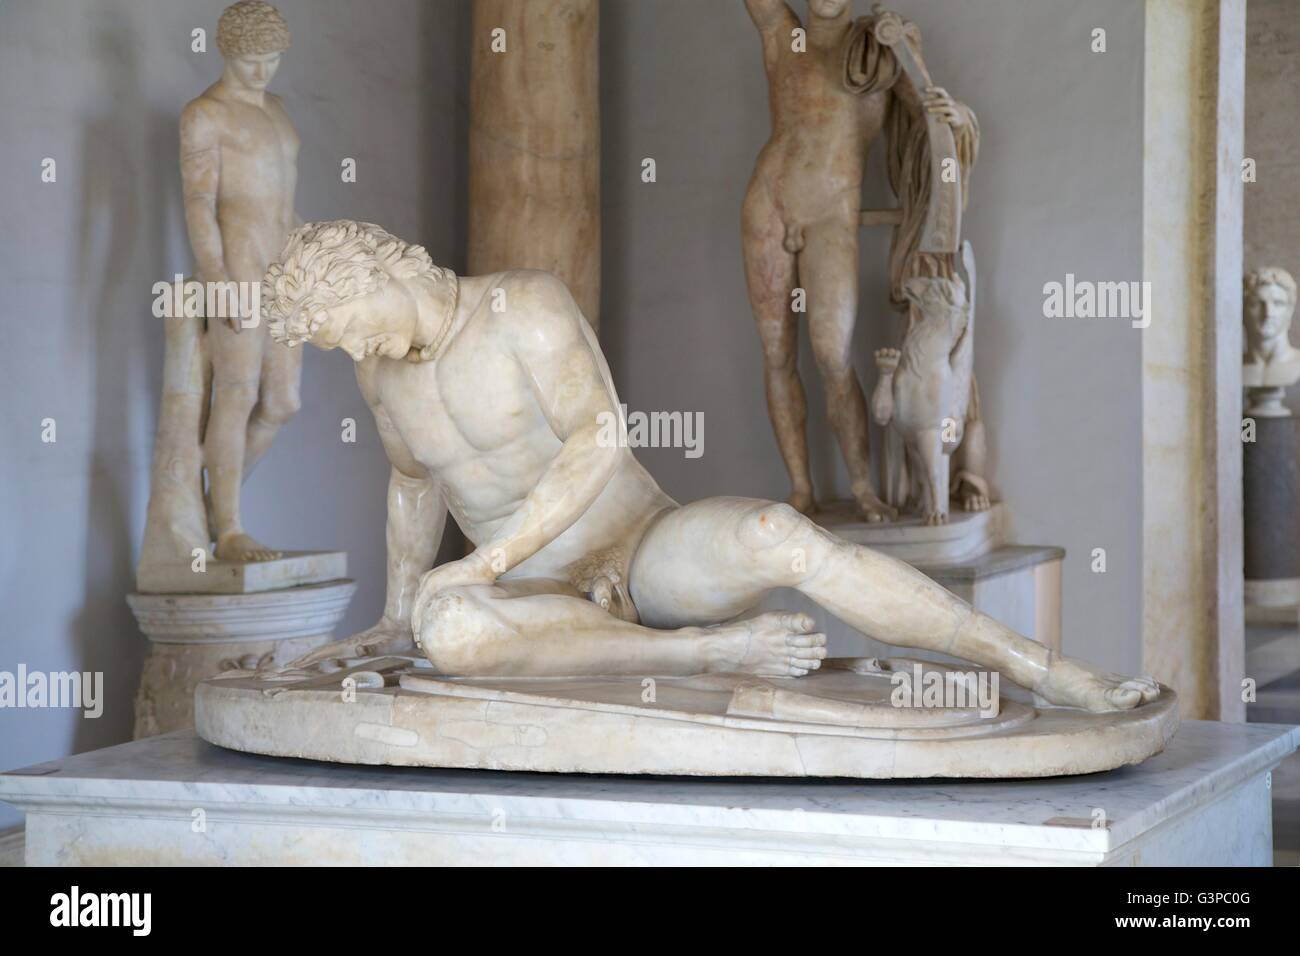 Dying Gaul sculpture,  Palazzo Nuovo, Capitoline Museum, Rome, Italy - Stock Image